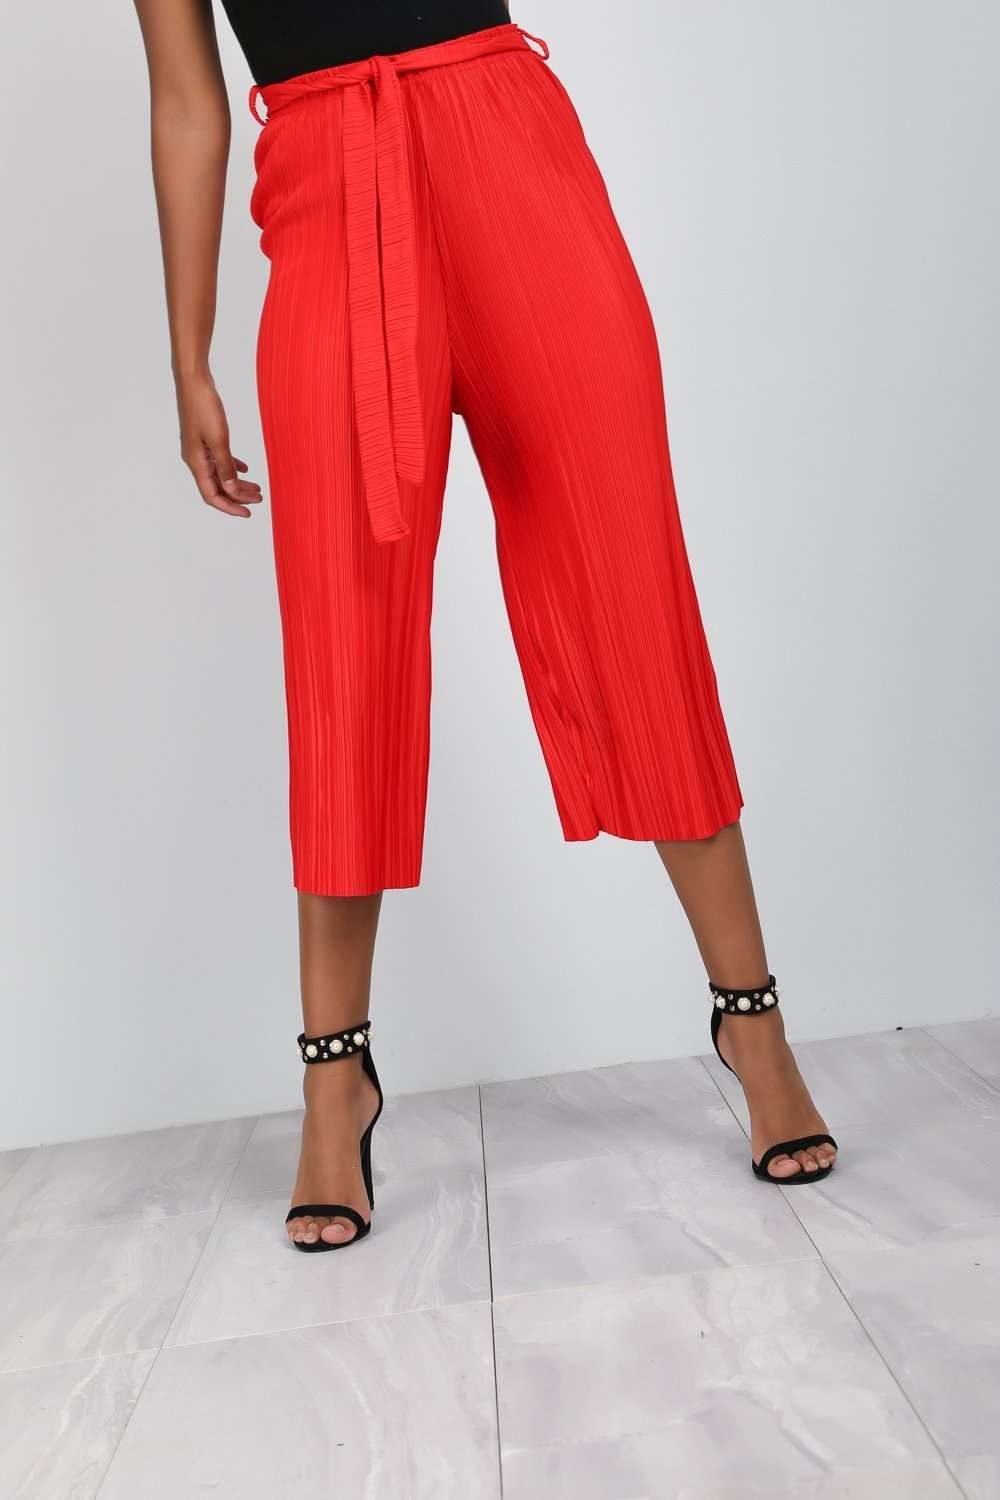 Amari Red High Waist Pleated Culottes - bejealous-com